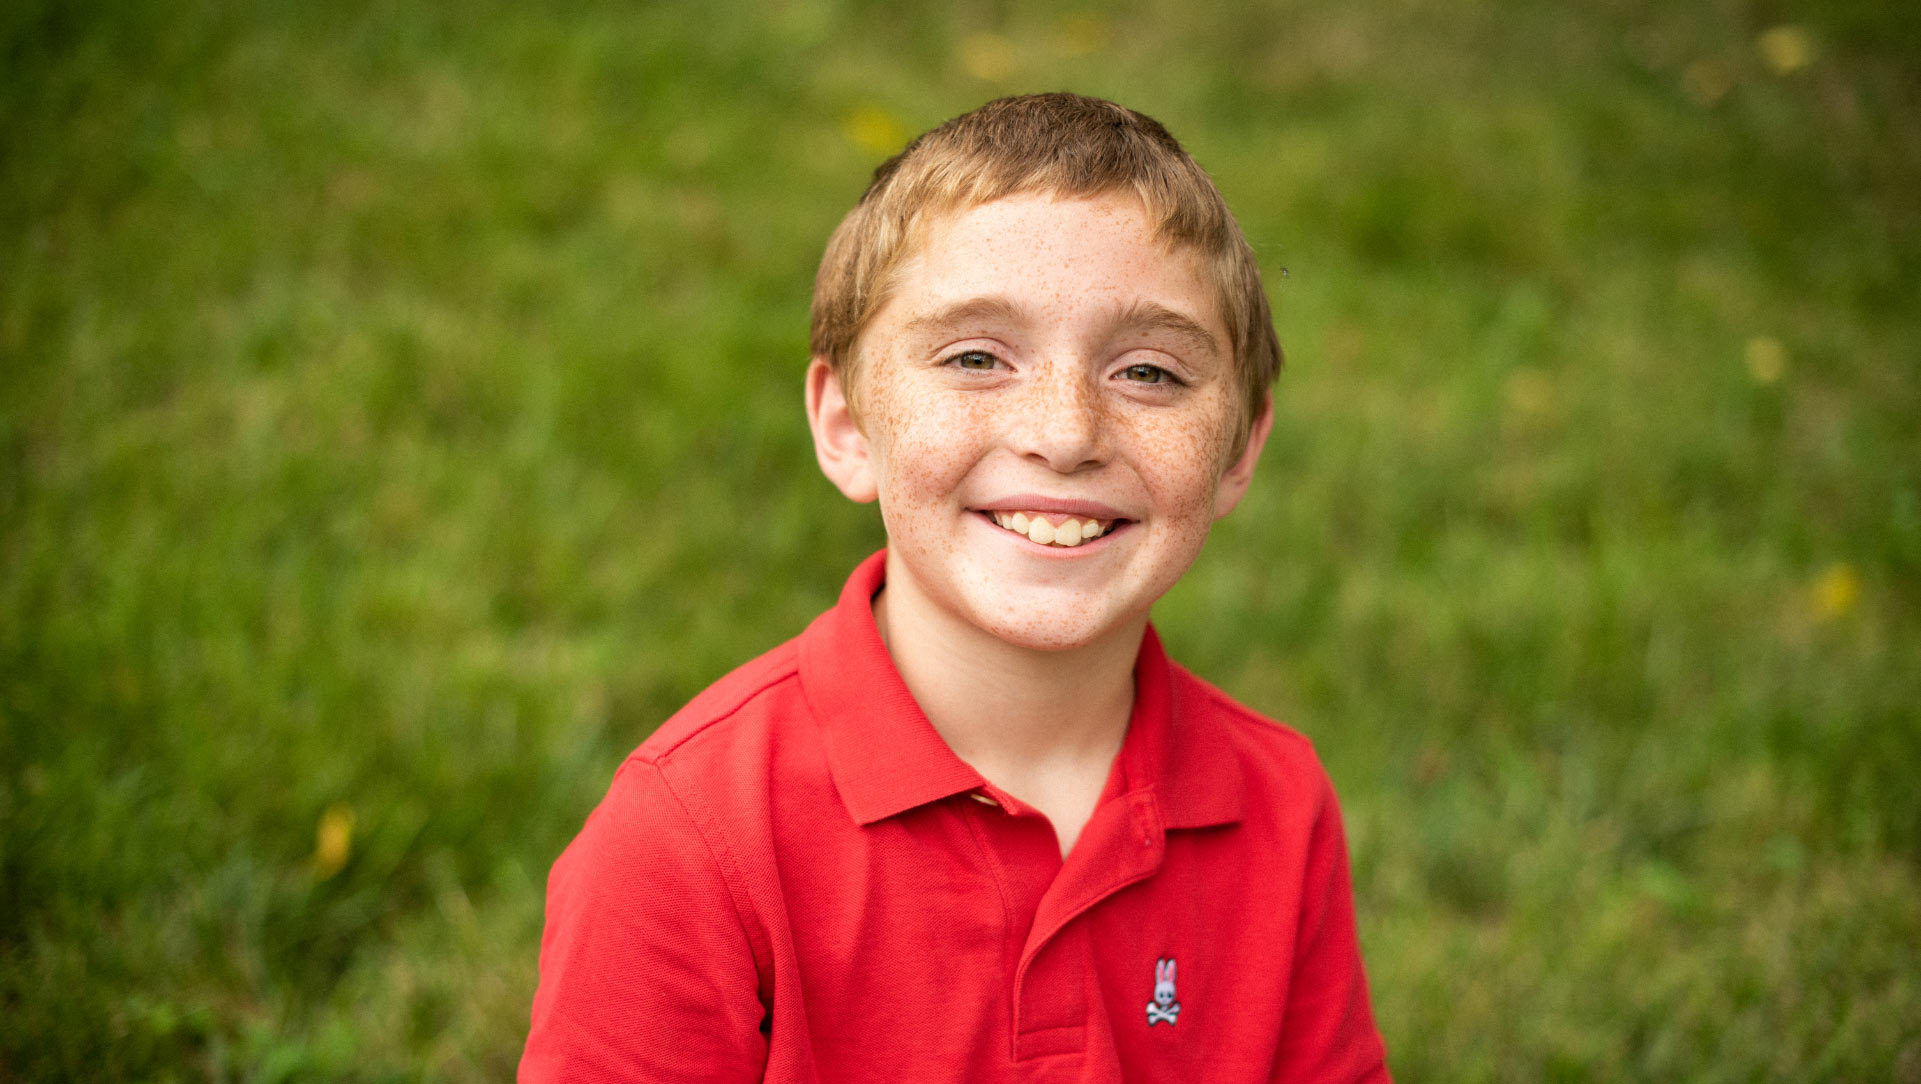 A portrait of Max, smiling broadly and wearing a red polo shirt.